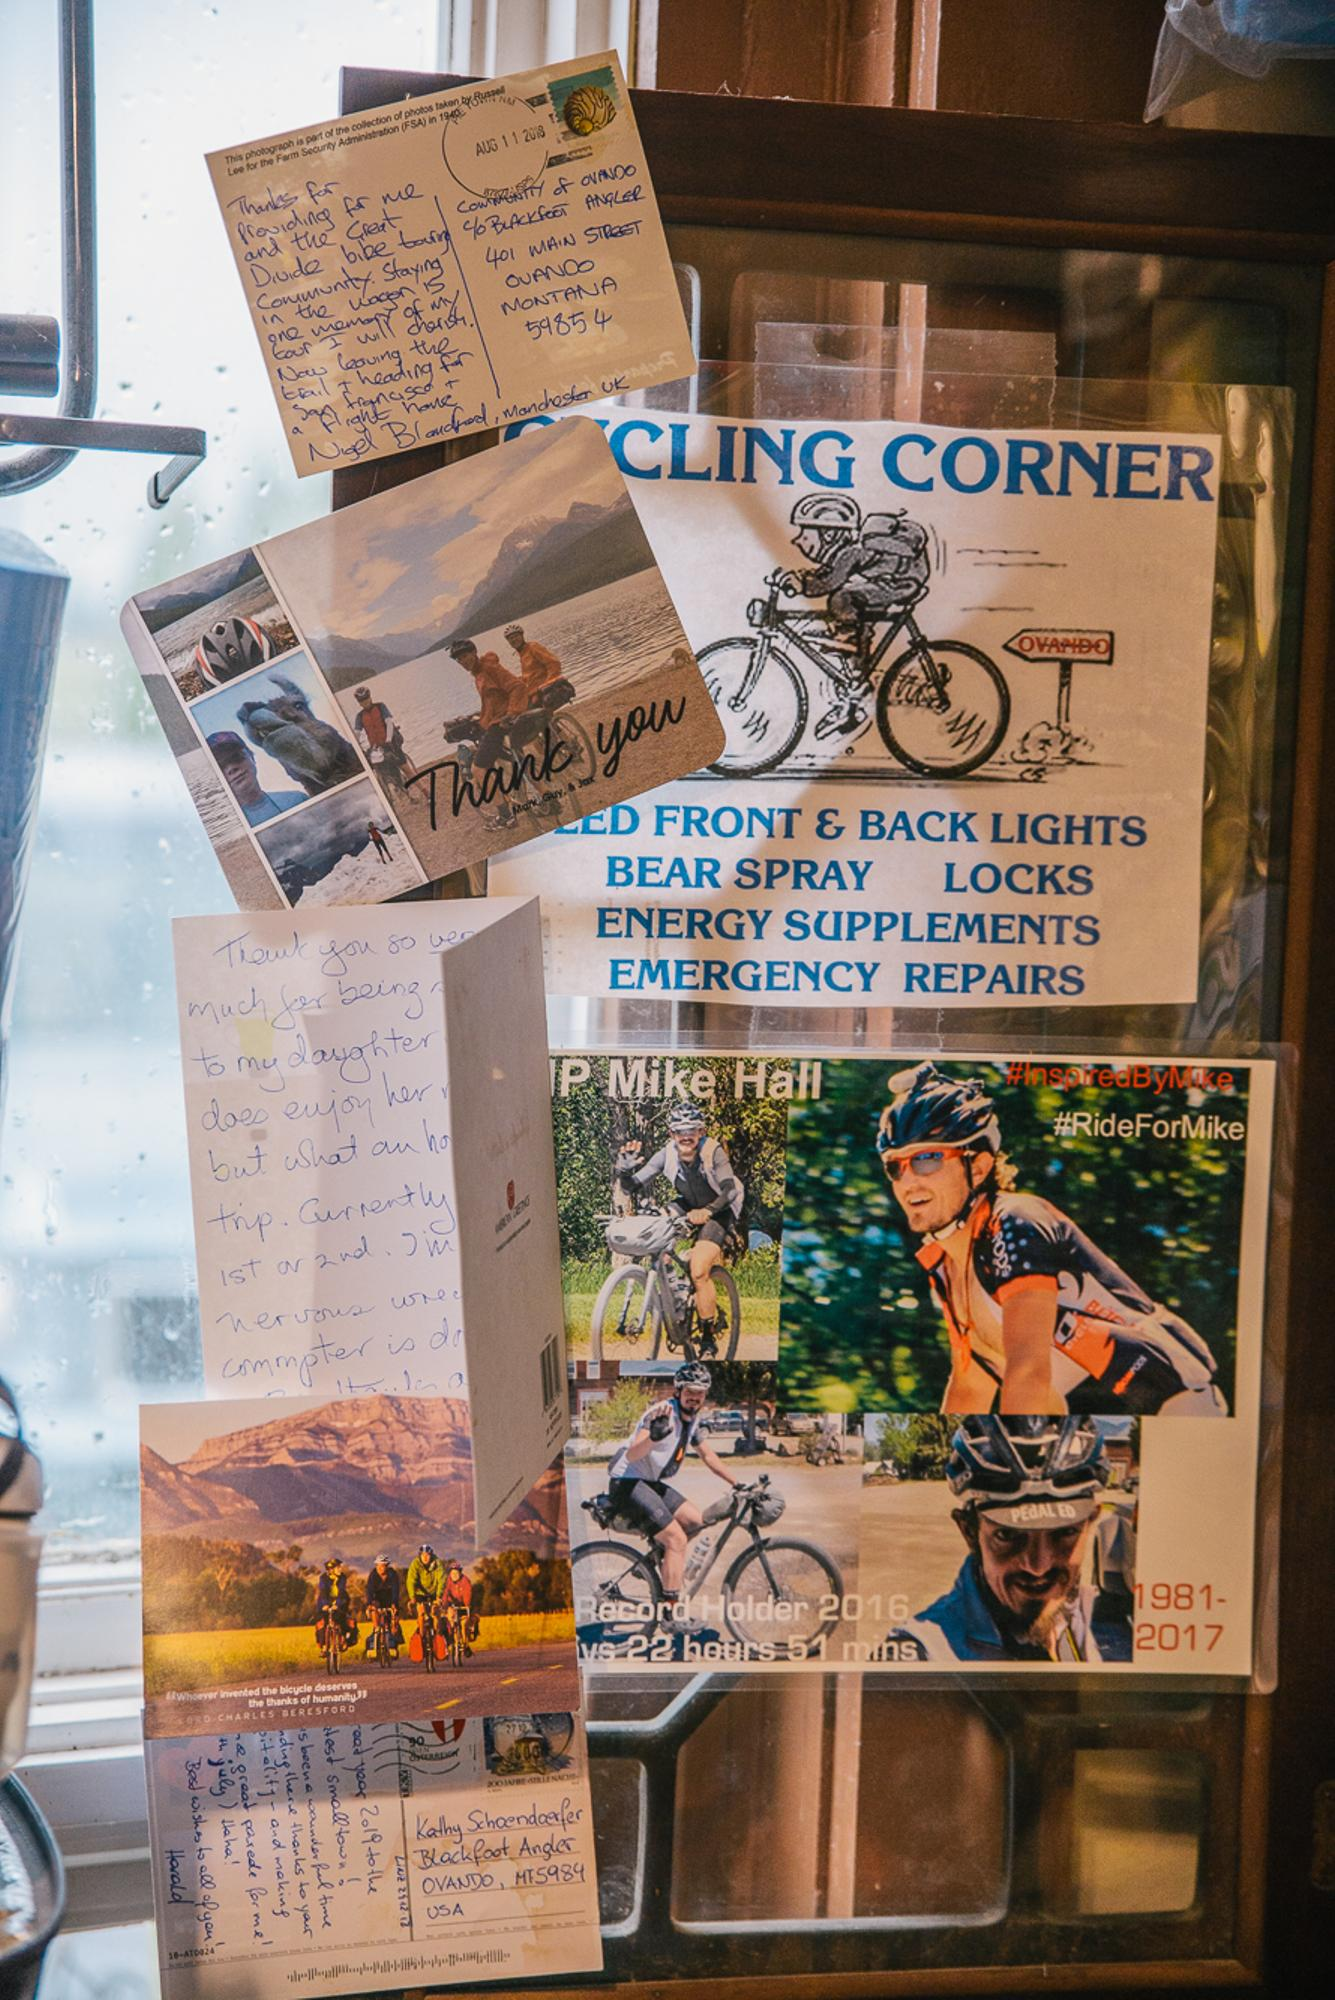 Kathy's cycling corner (Spencer Harding)